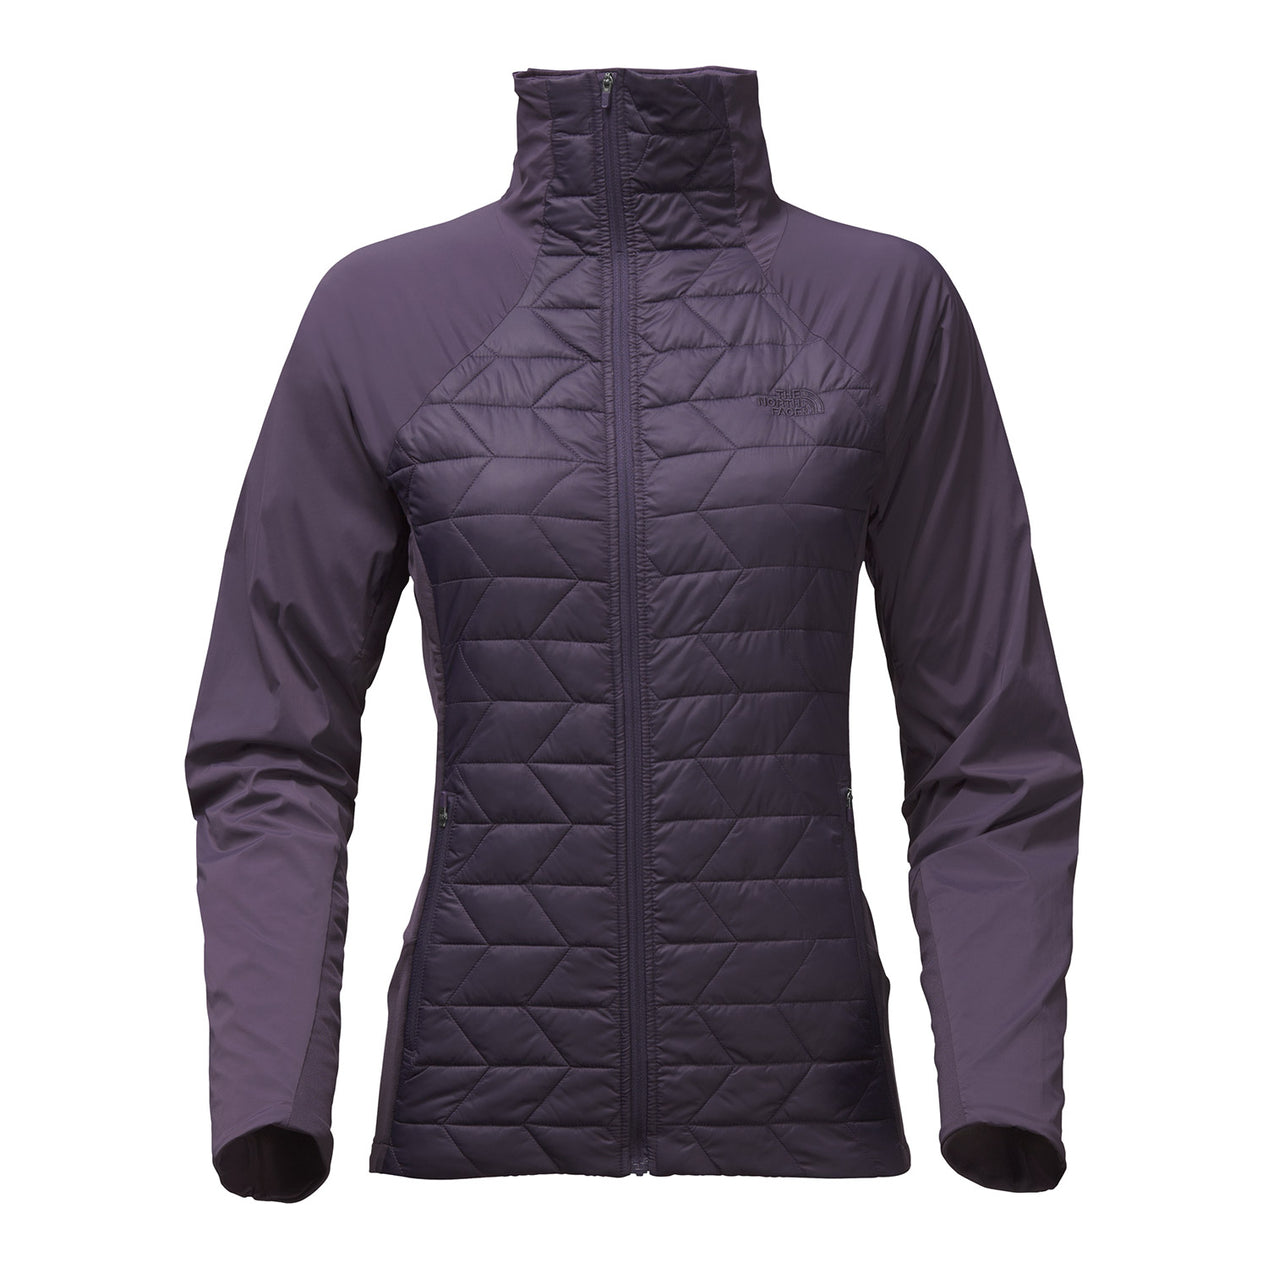 614248c97 The North Face Women's ThermoBall™ Active Jacket